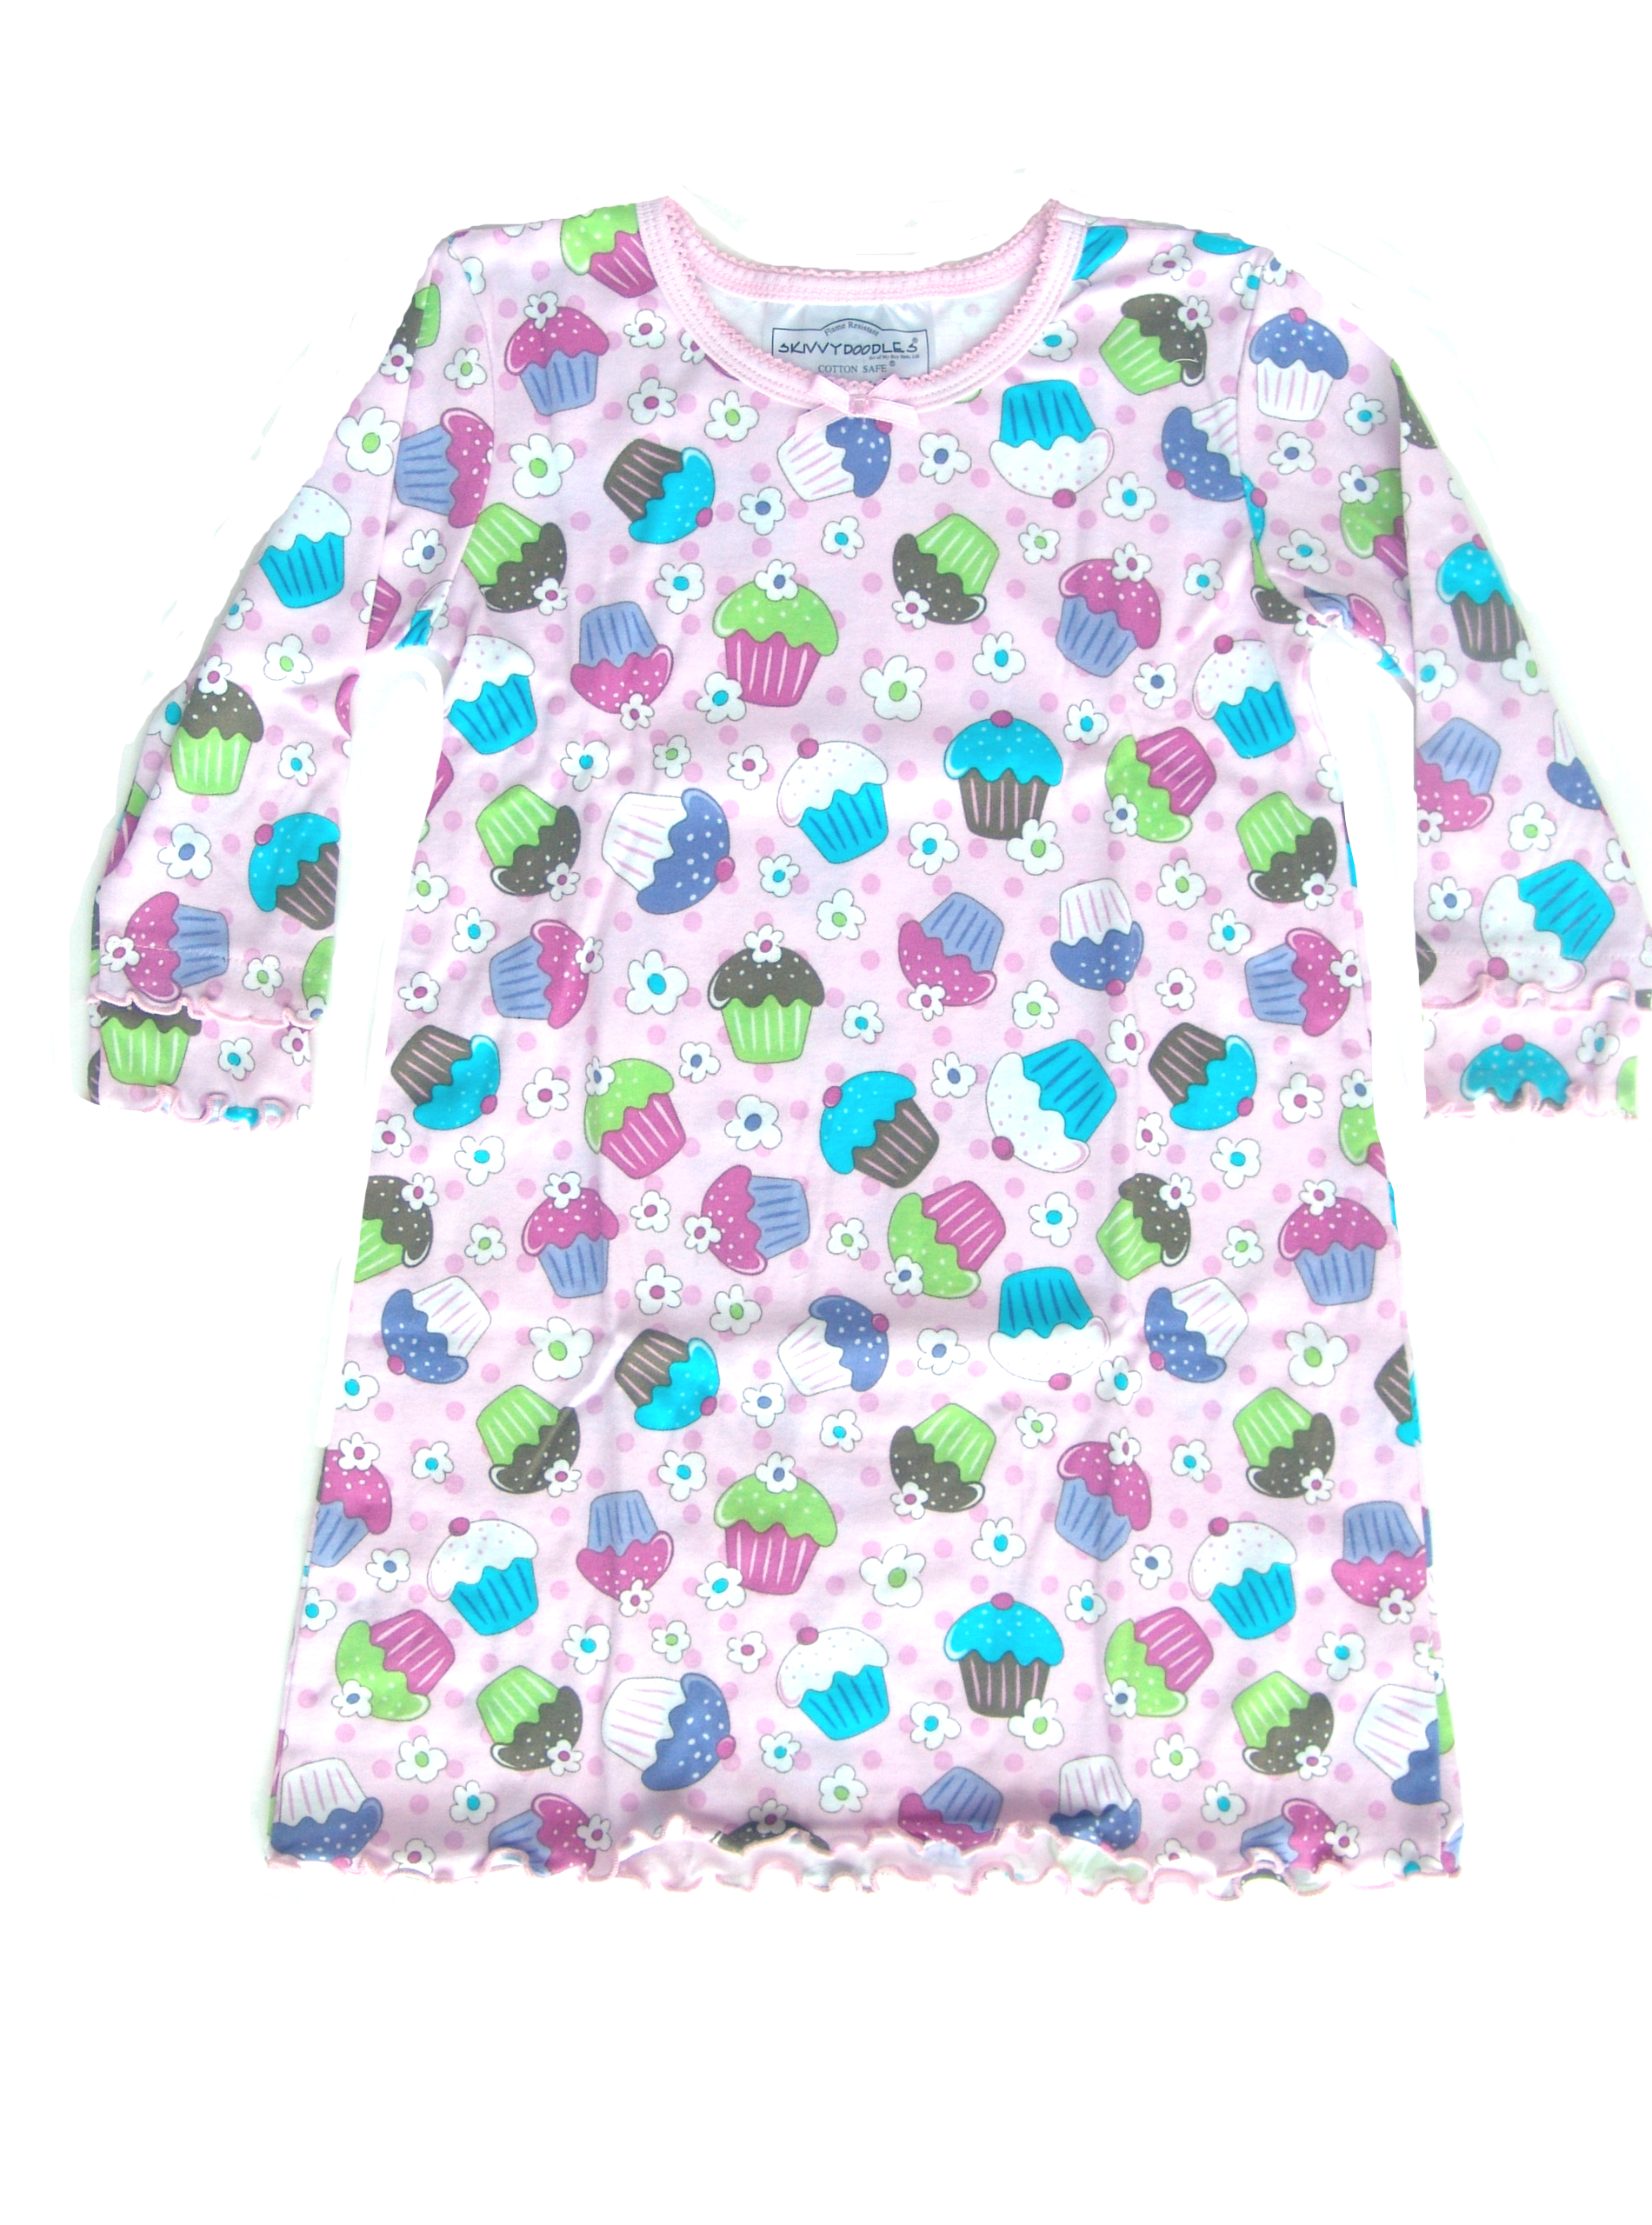 1fcb20b60dca nightgowns for girls